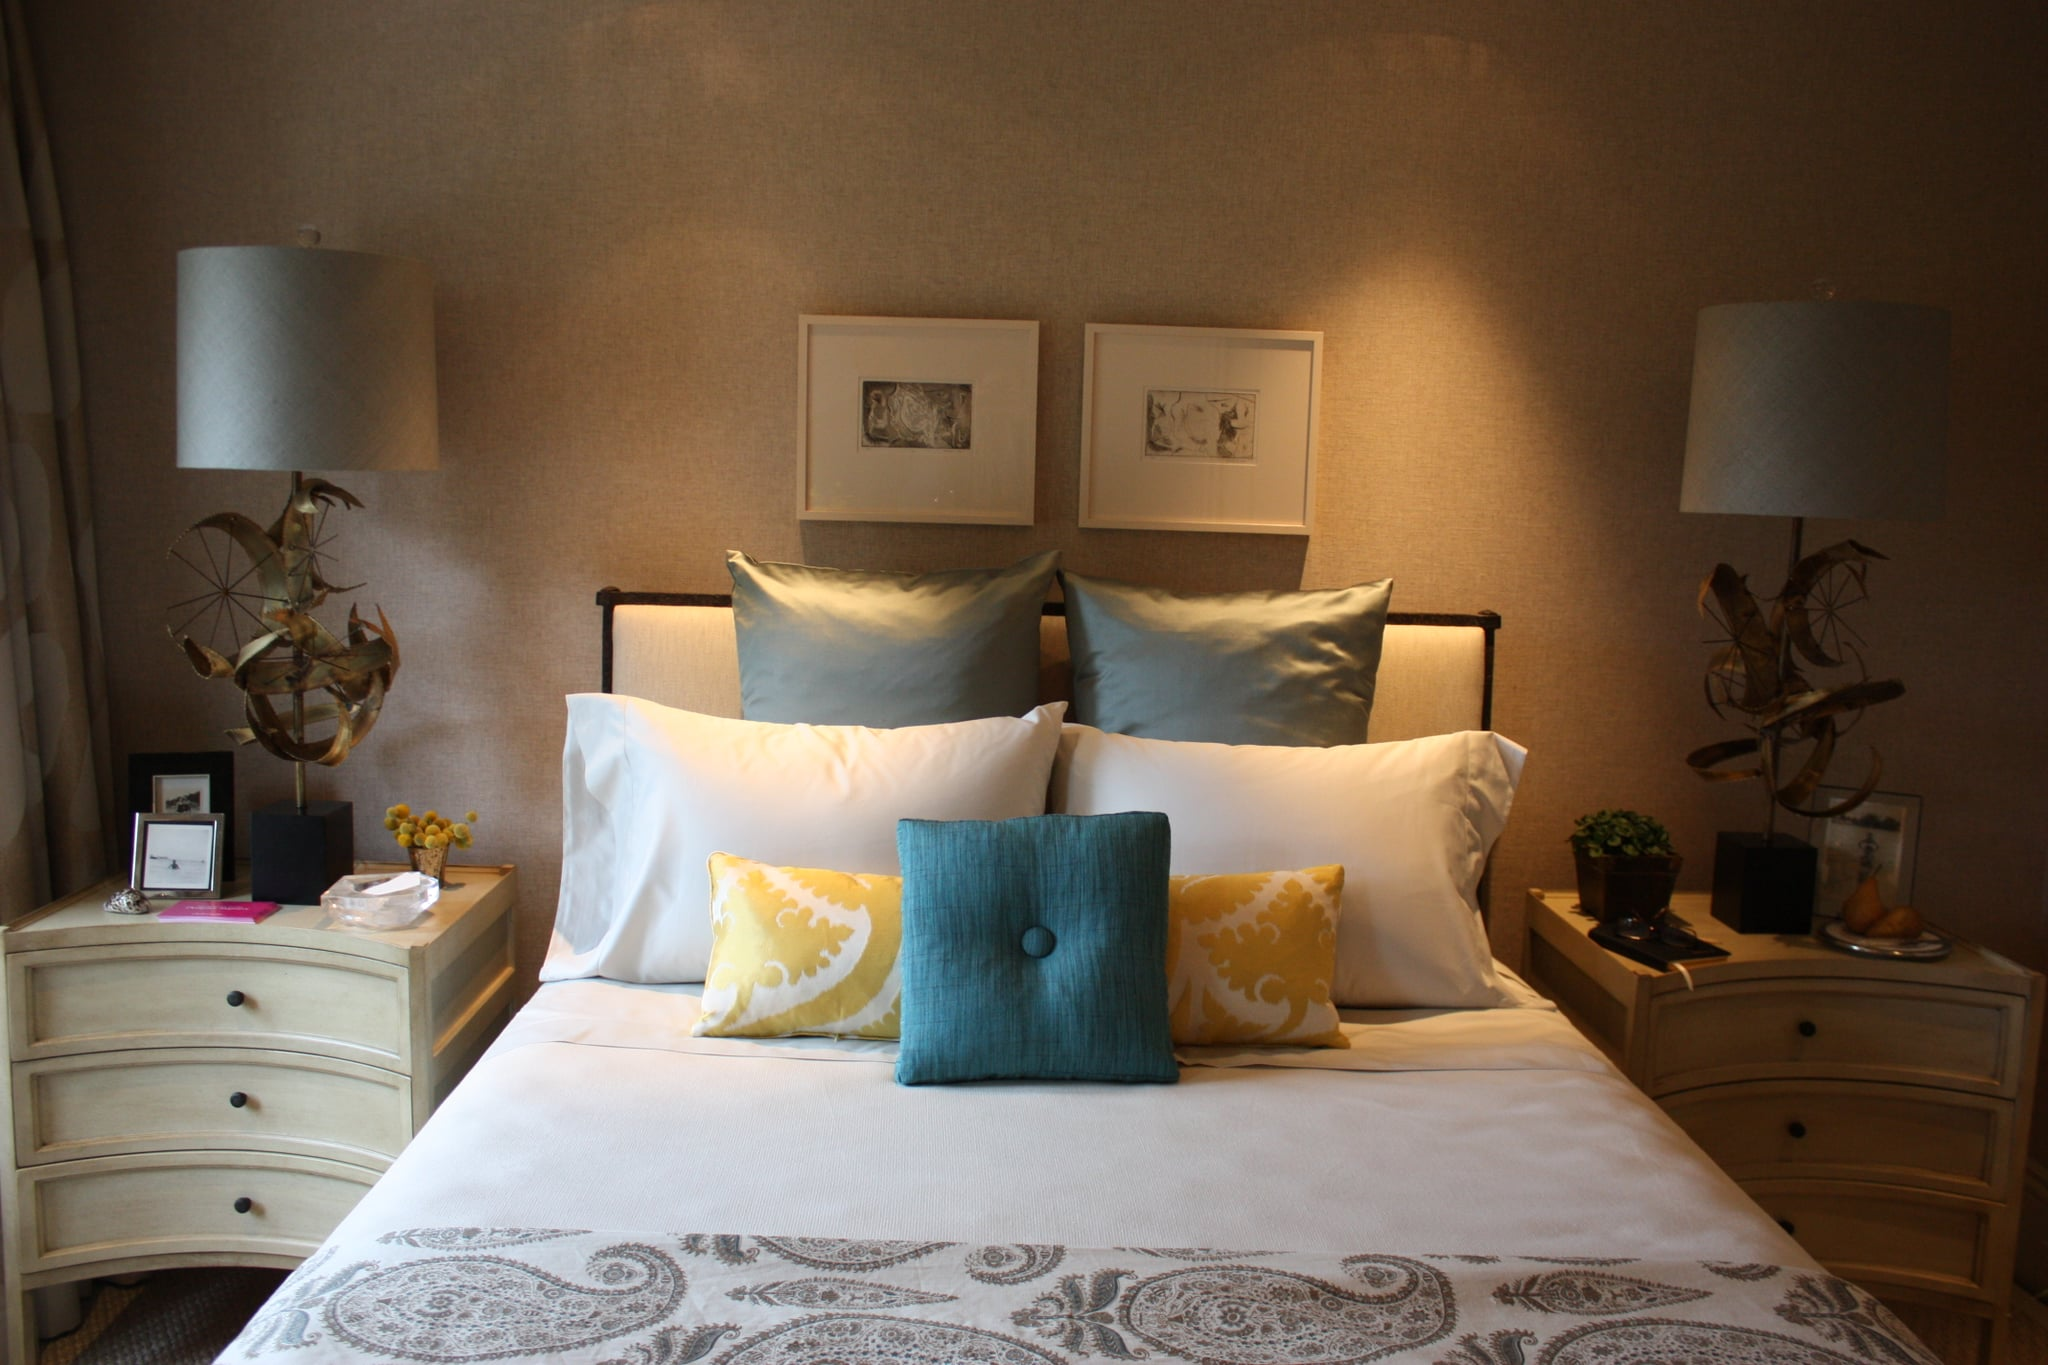 Showhouse Bedroom Ideas: Pictures Of The 2010 Elle Decor Showhouse In San Francisco